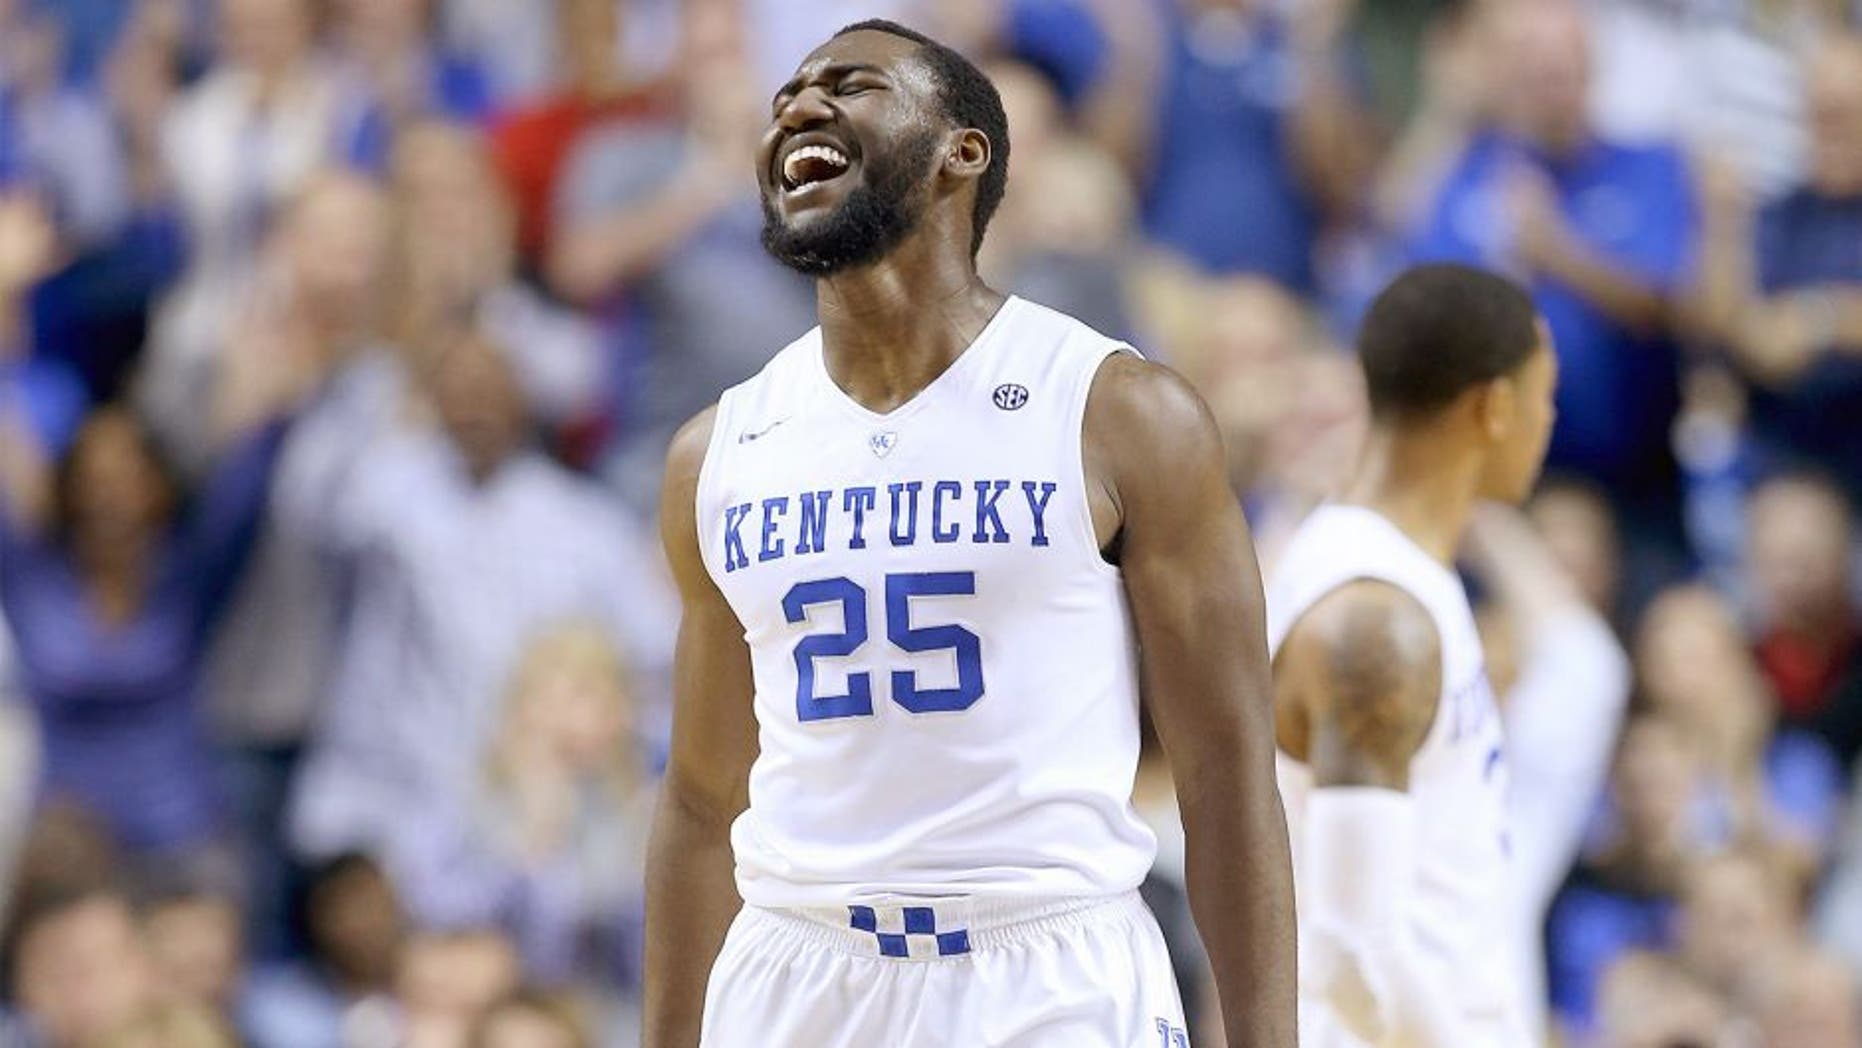 LEXINGTON, KY - DECEMBER 26: Dominique Hawkins #25 of the Kentucky Wildcats celebrates against the Louisville Cardinals at Rupp Arena on December 26, 2015 in Lexington, Kentucky. (Photo by Andy Lyons/Getty Images)